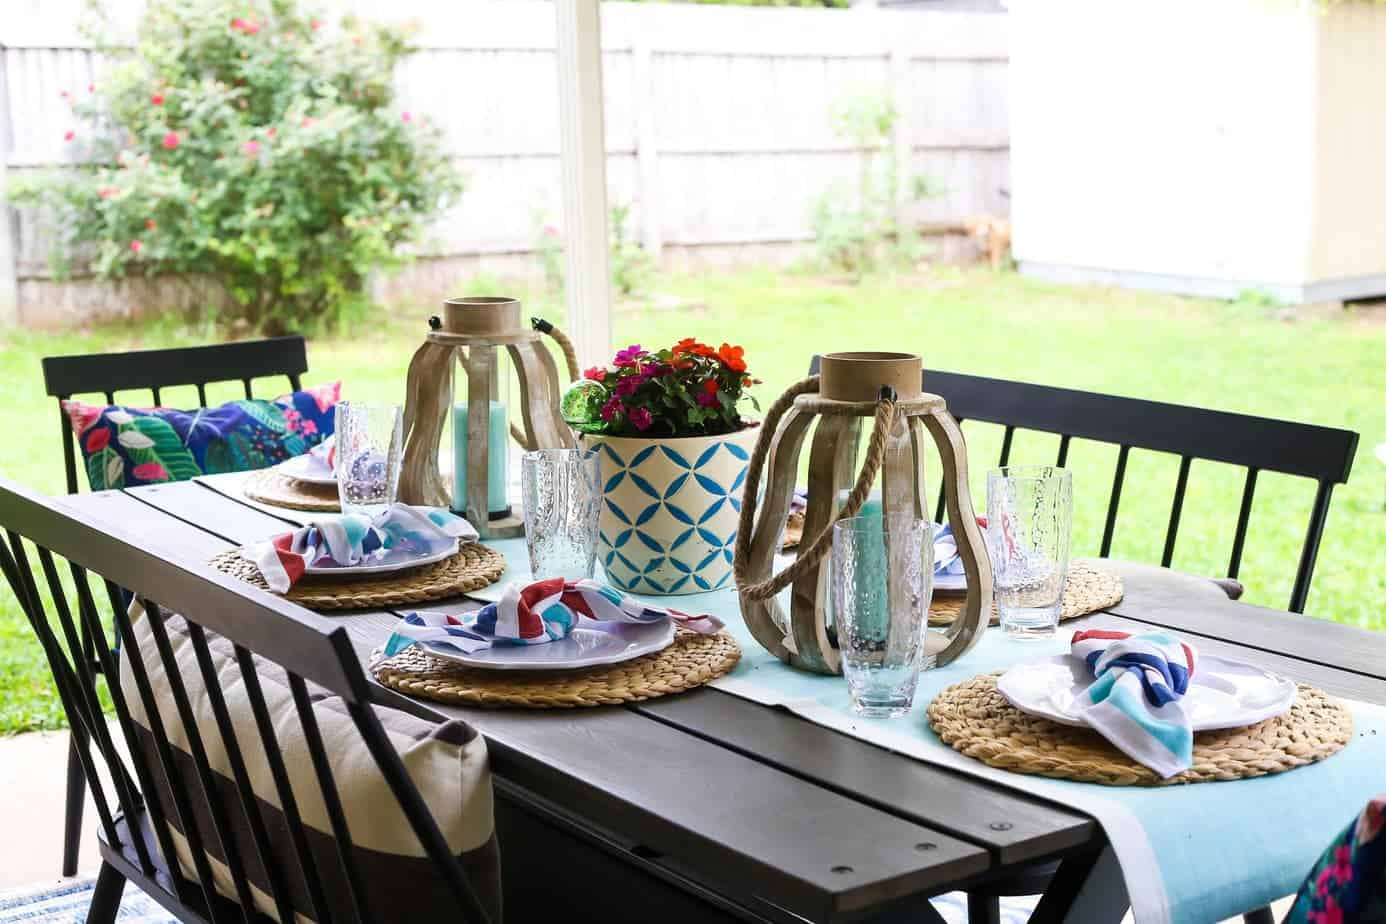 Patio table with blue and red decor